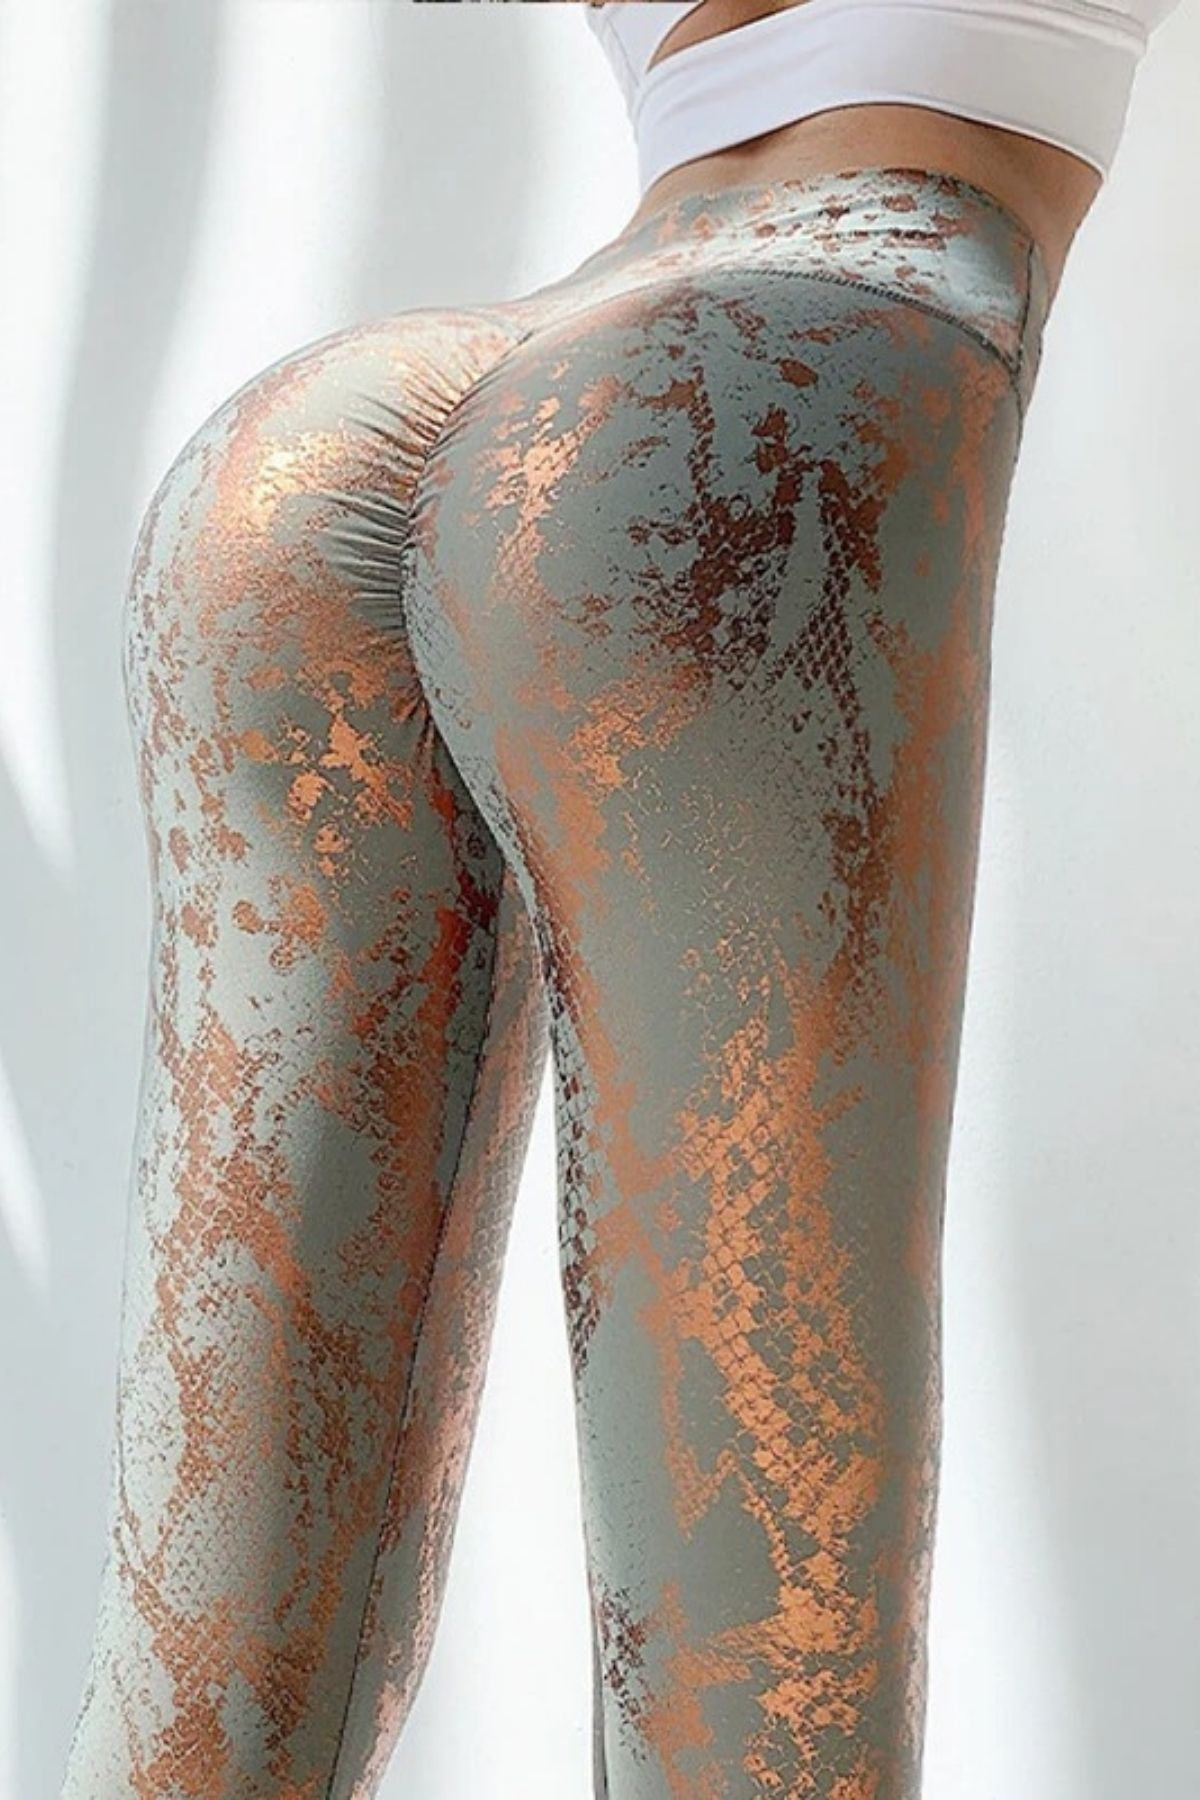 Women's Sexy Tight Grey Print Legging With High Waisted Fit And Ruched Shiny Metallic Color